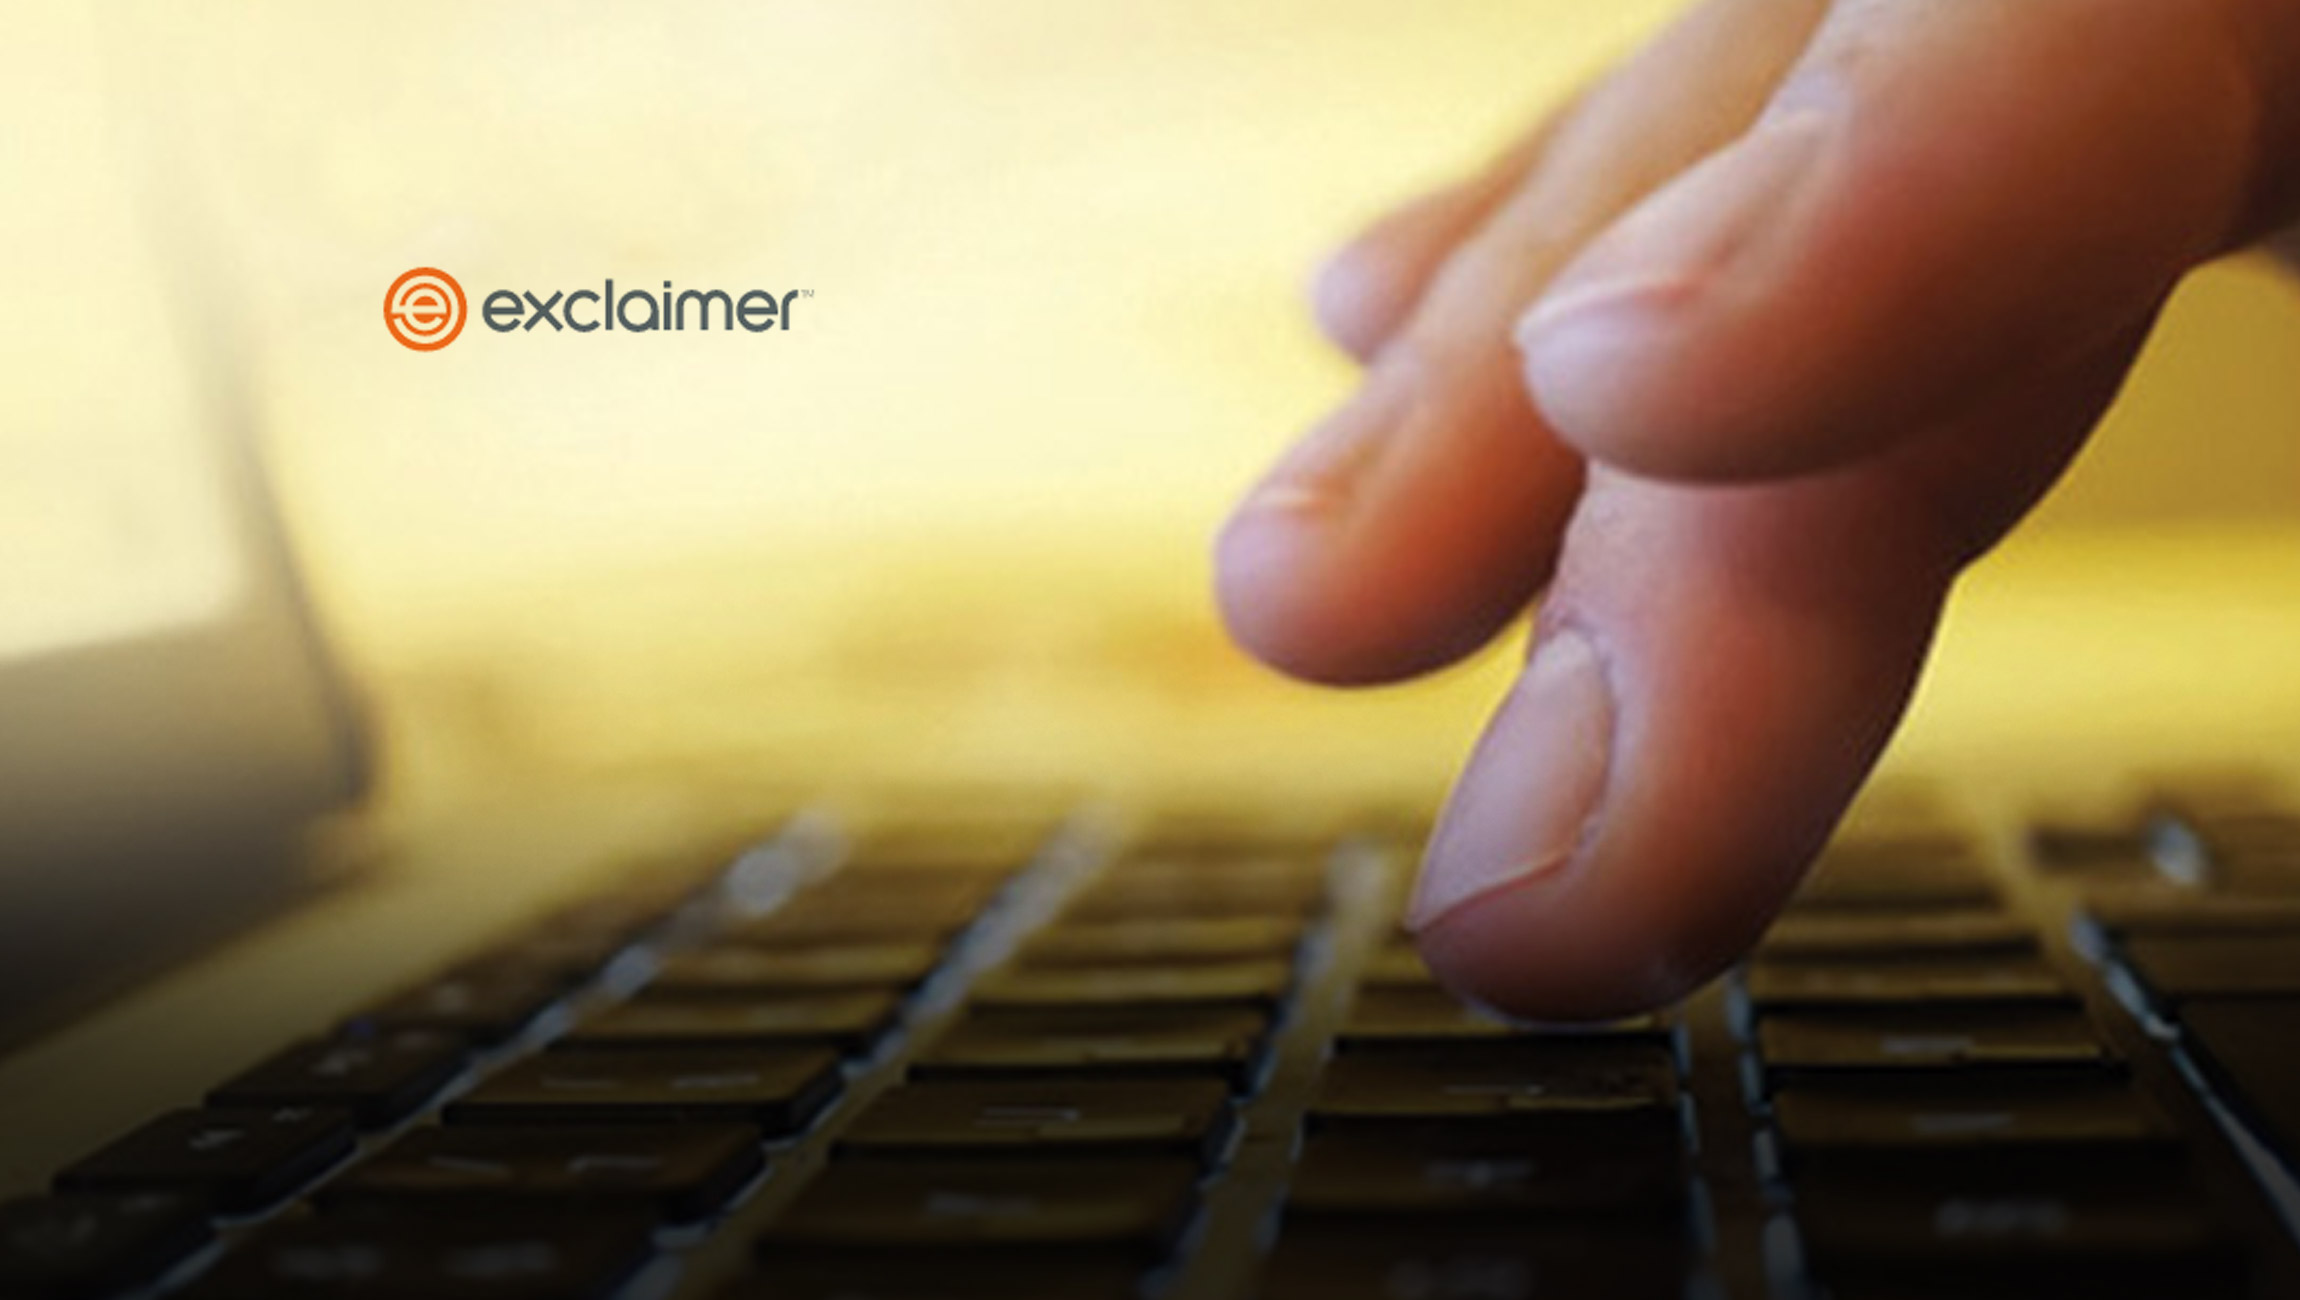 Exclaimer Secures Over £100 Million in Strategic Investment to Bring Email Signature Management Software to the Global Business Ecosystem